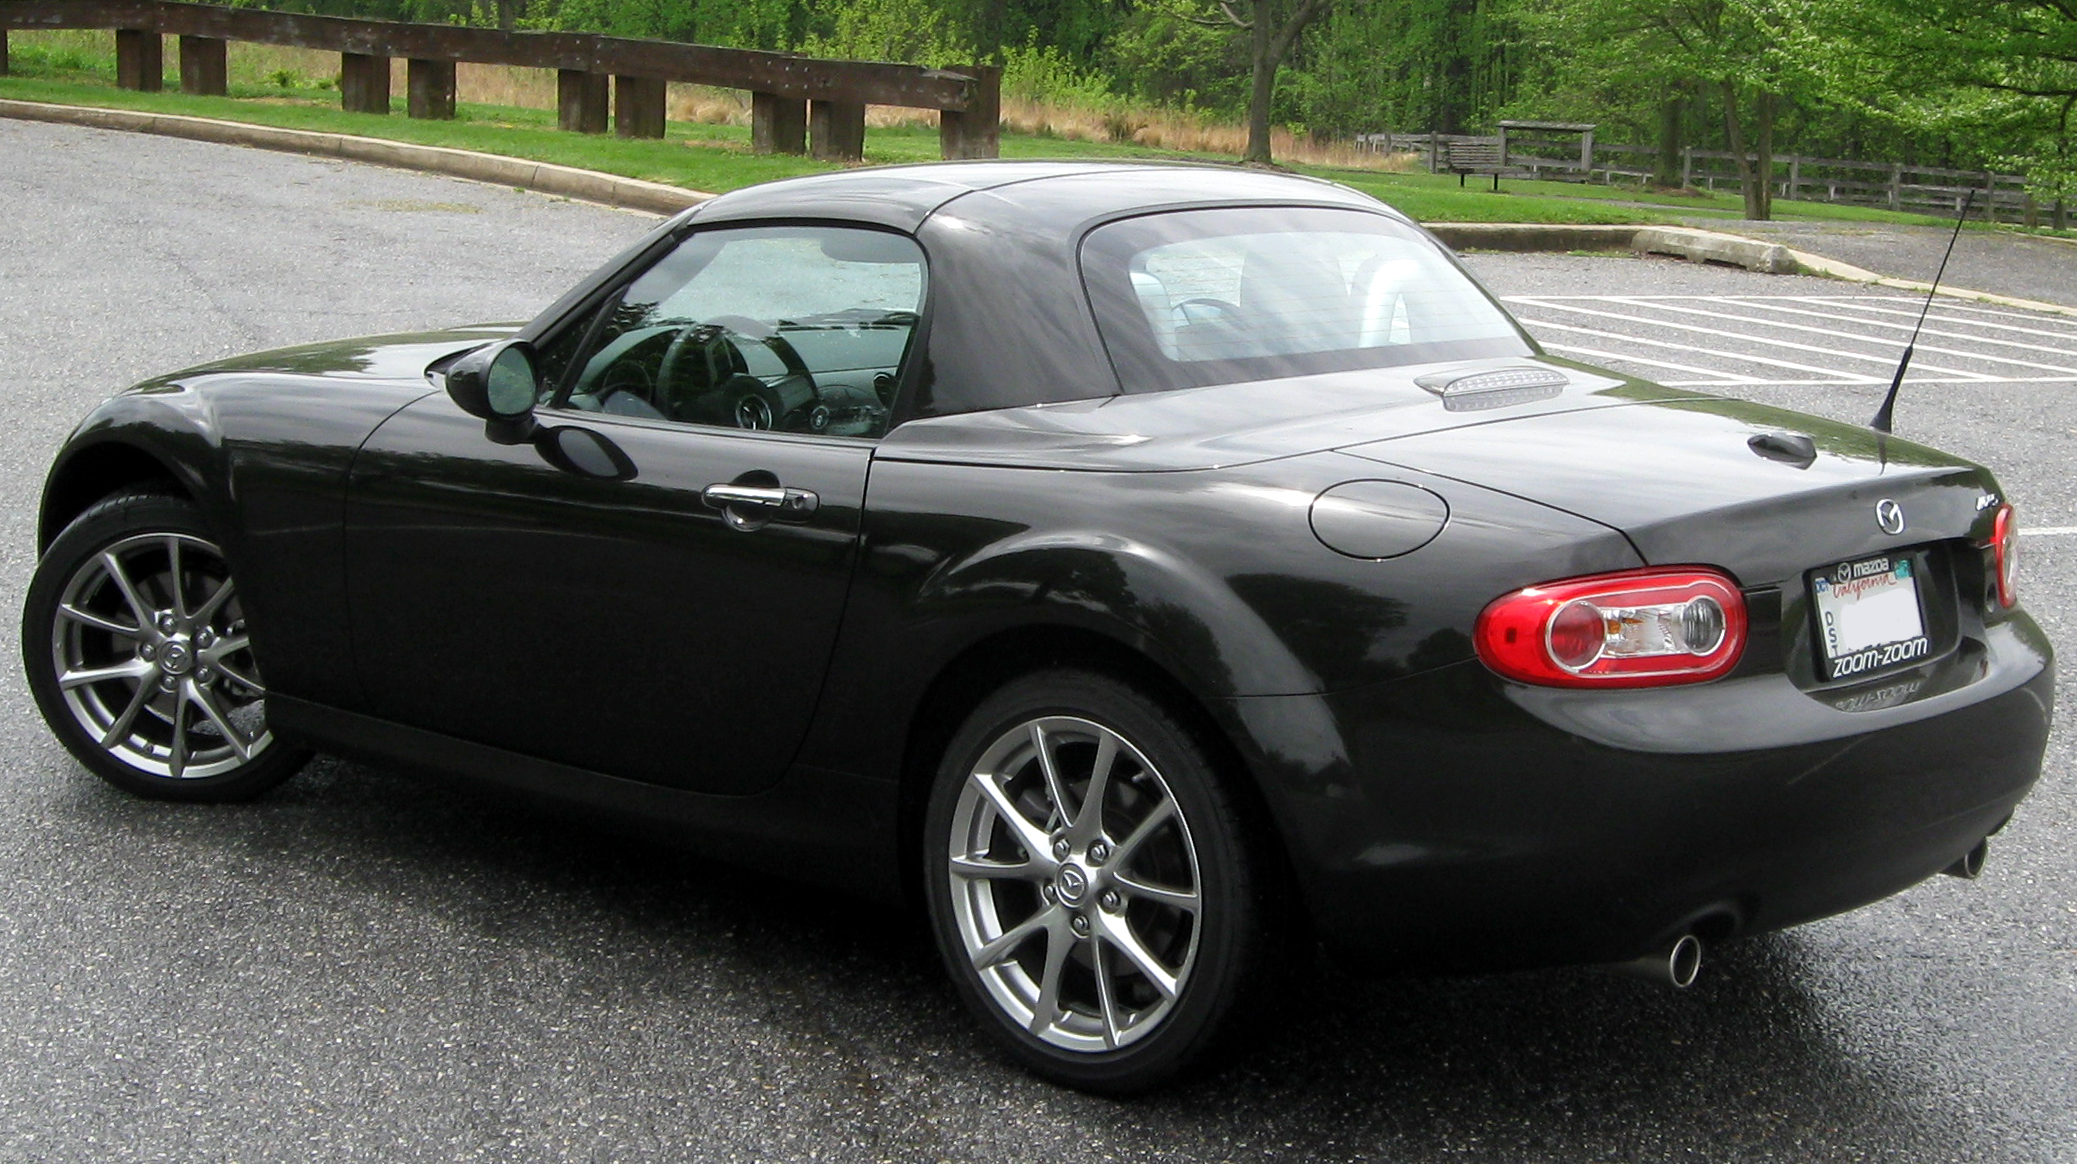 mazda mx5 mazda tintdude forum. Black Bedroom Furniture Sets. Home Design Ideas